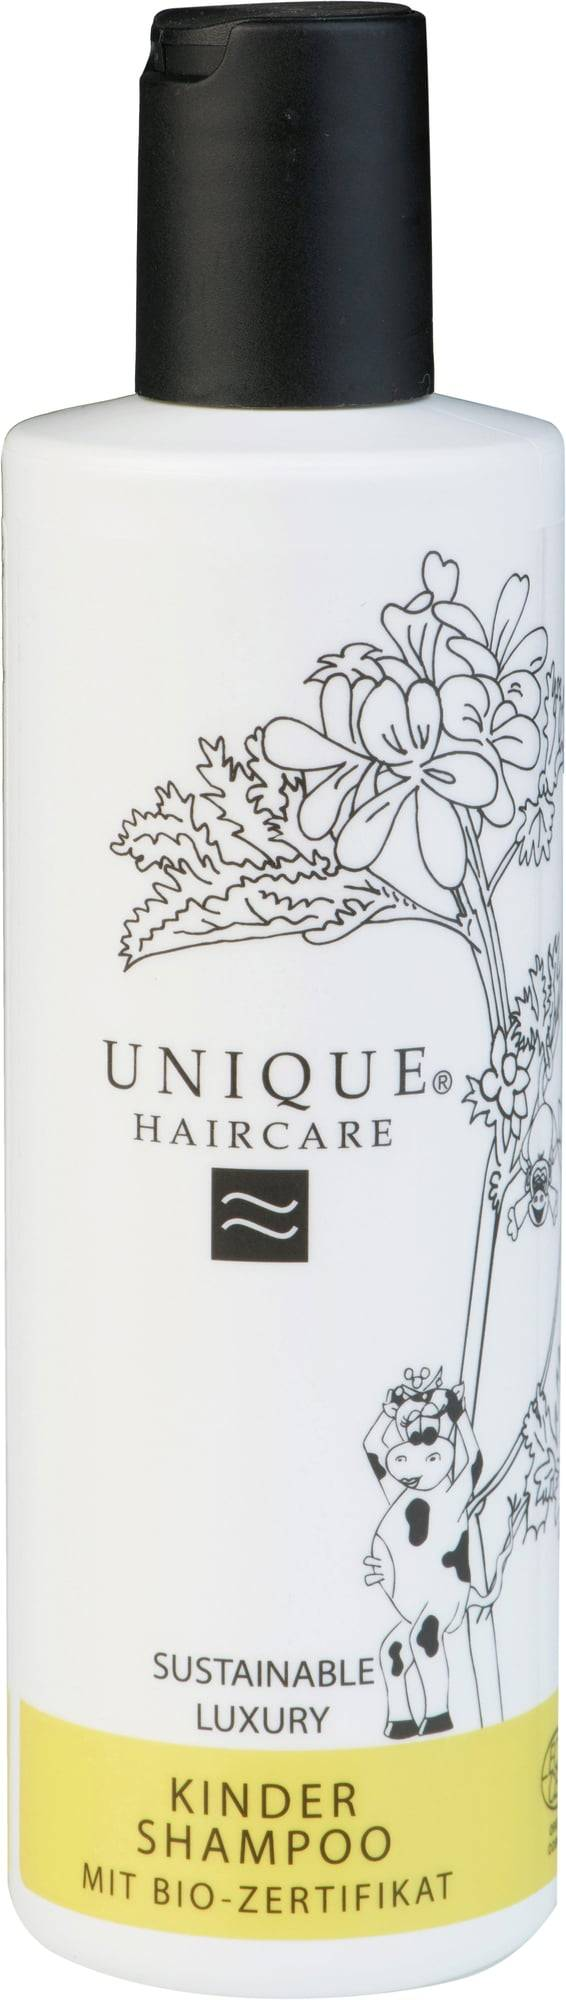 Unique Beauty Hajusteeton shampoo lapsille - 250 ml